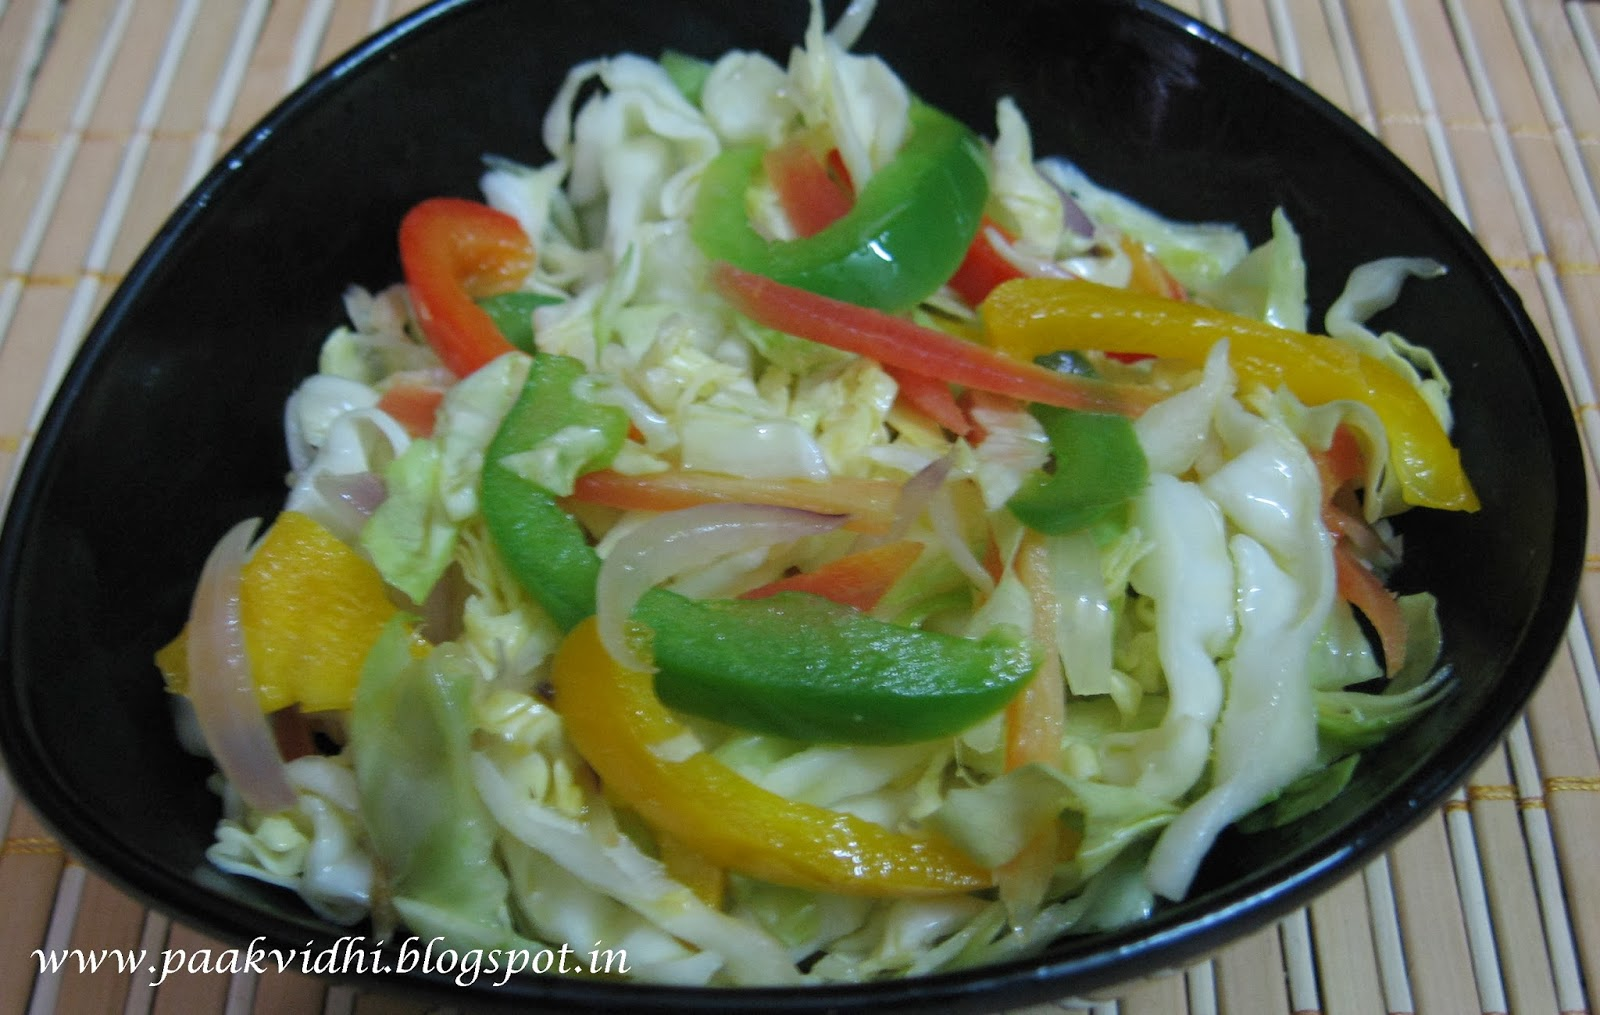 http://paakvidhi.blogspot.in/2014/03/cabbage-salad.html